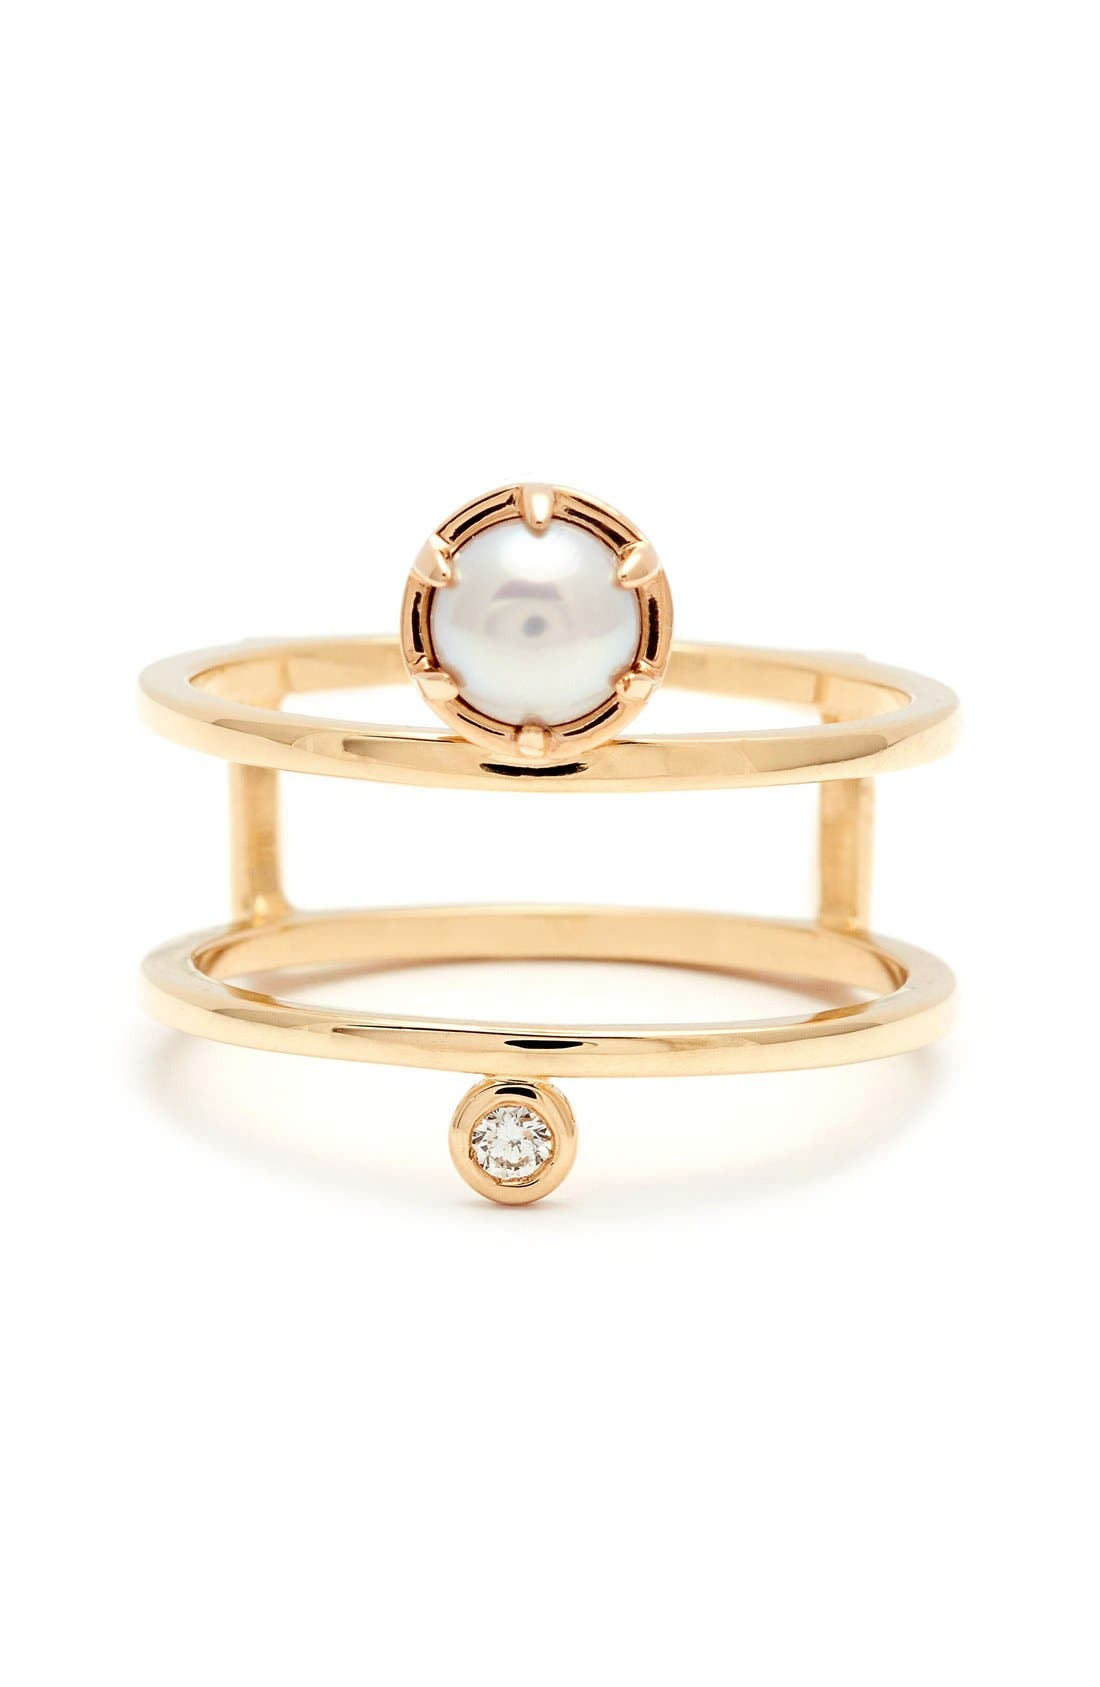 'Reverse Attelage' Double Band Pearl & Diamond Ring,                             Main thumbnail 1, color,                             YELLOW/ GOLD/ WHITE